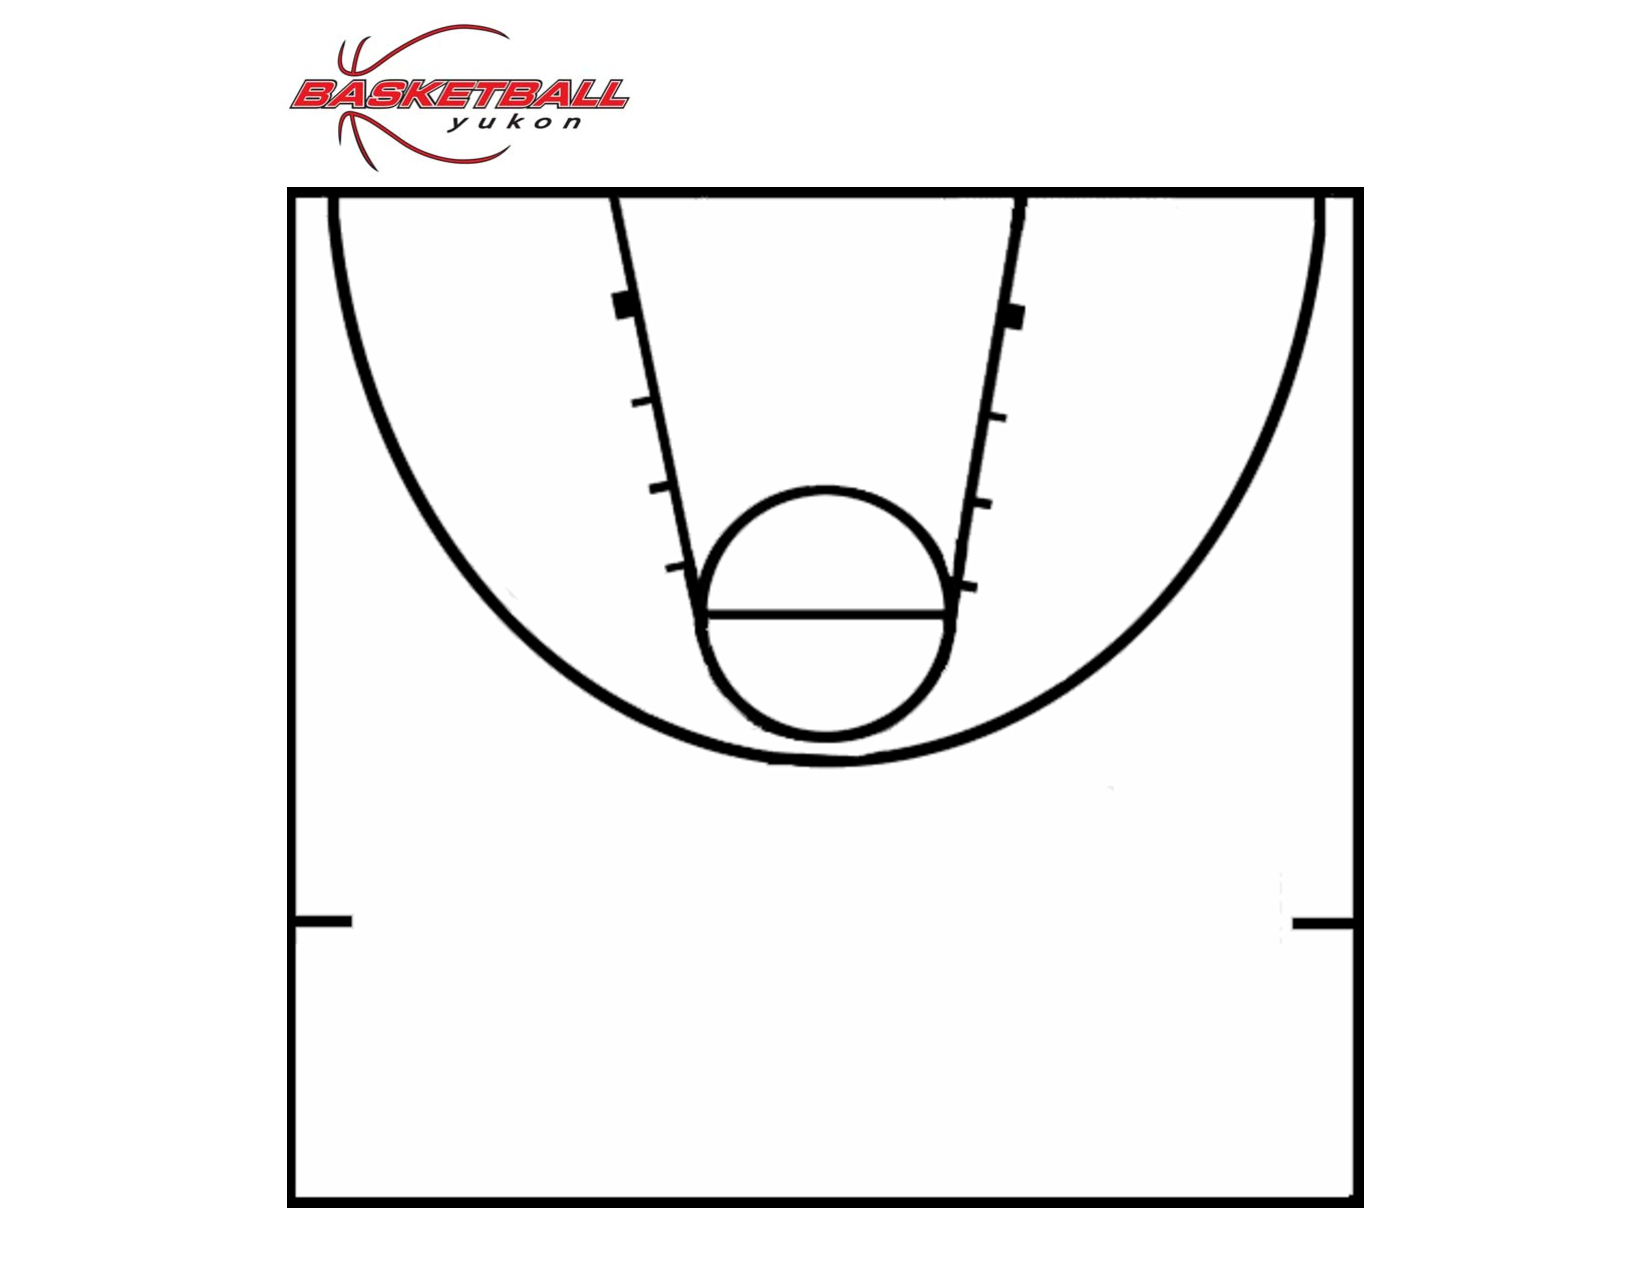 Printable Basketball Court | Clipart Panda - Free Clipart Images - Free Printable Basketball Court